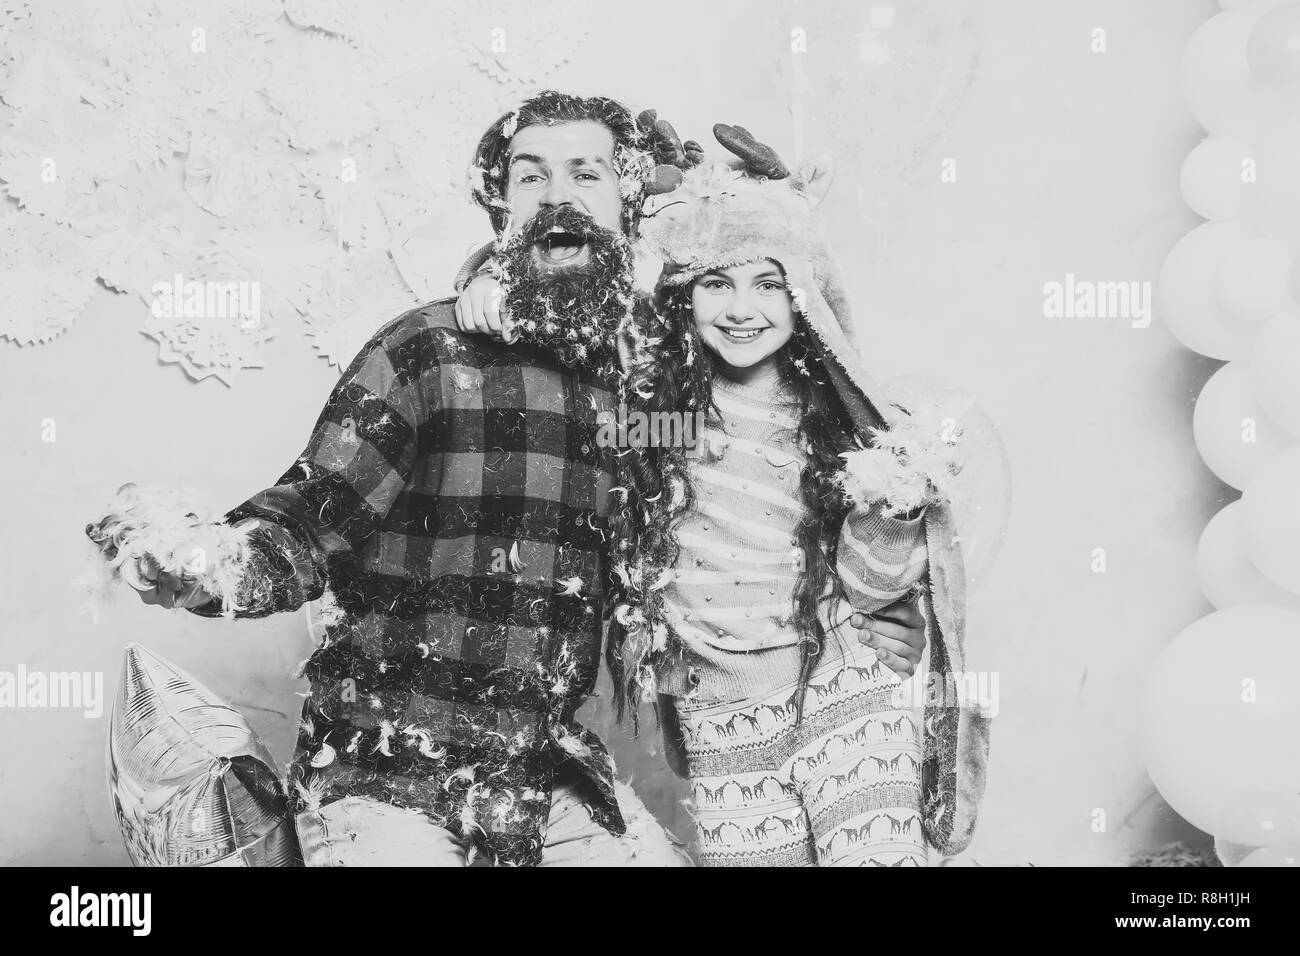 Father and daughter playing, celebrating and having fun on eve of Christmas or New Year - Stock Image